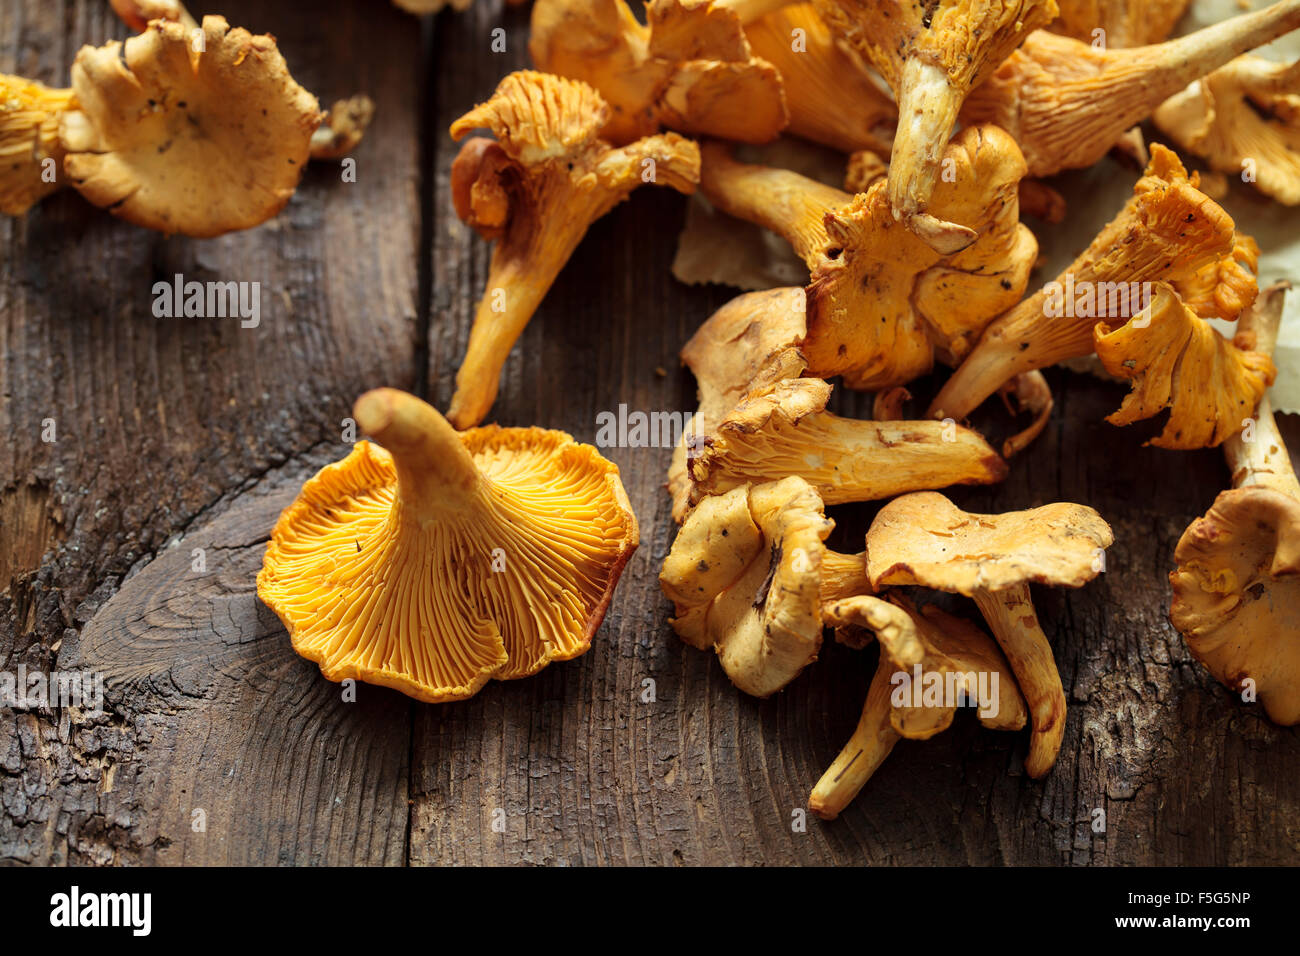 Champignons sauvages girolle Photo Stock